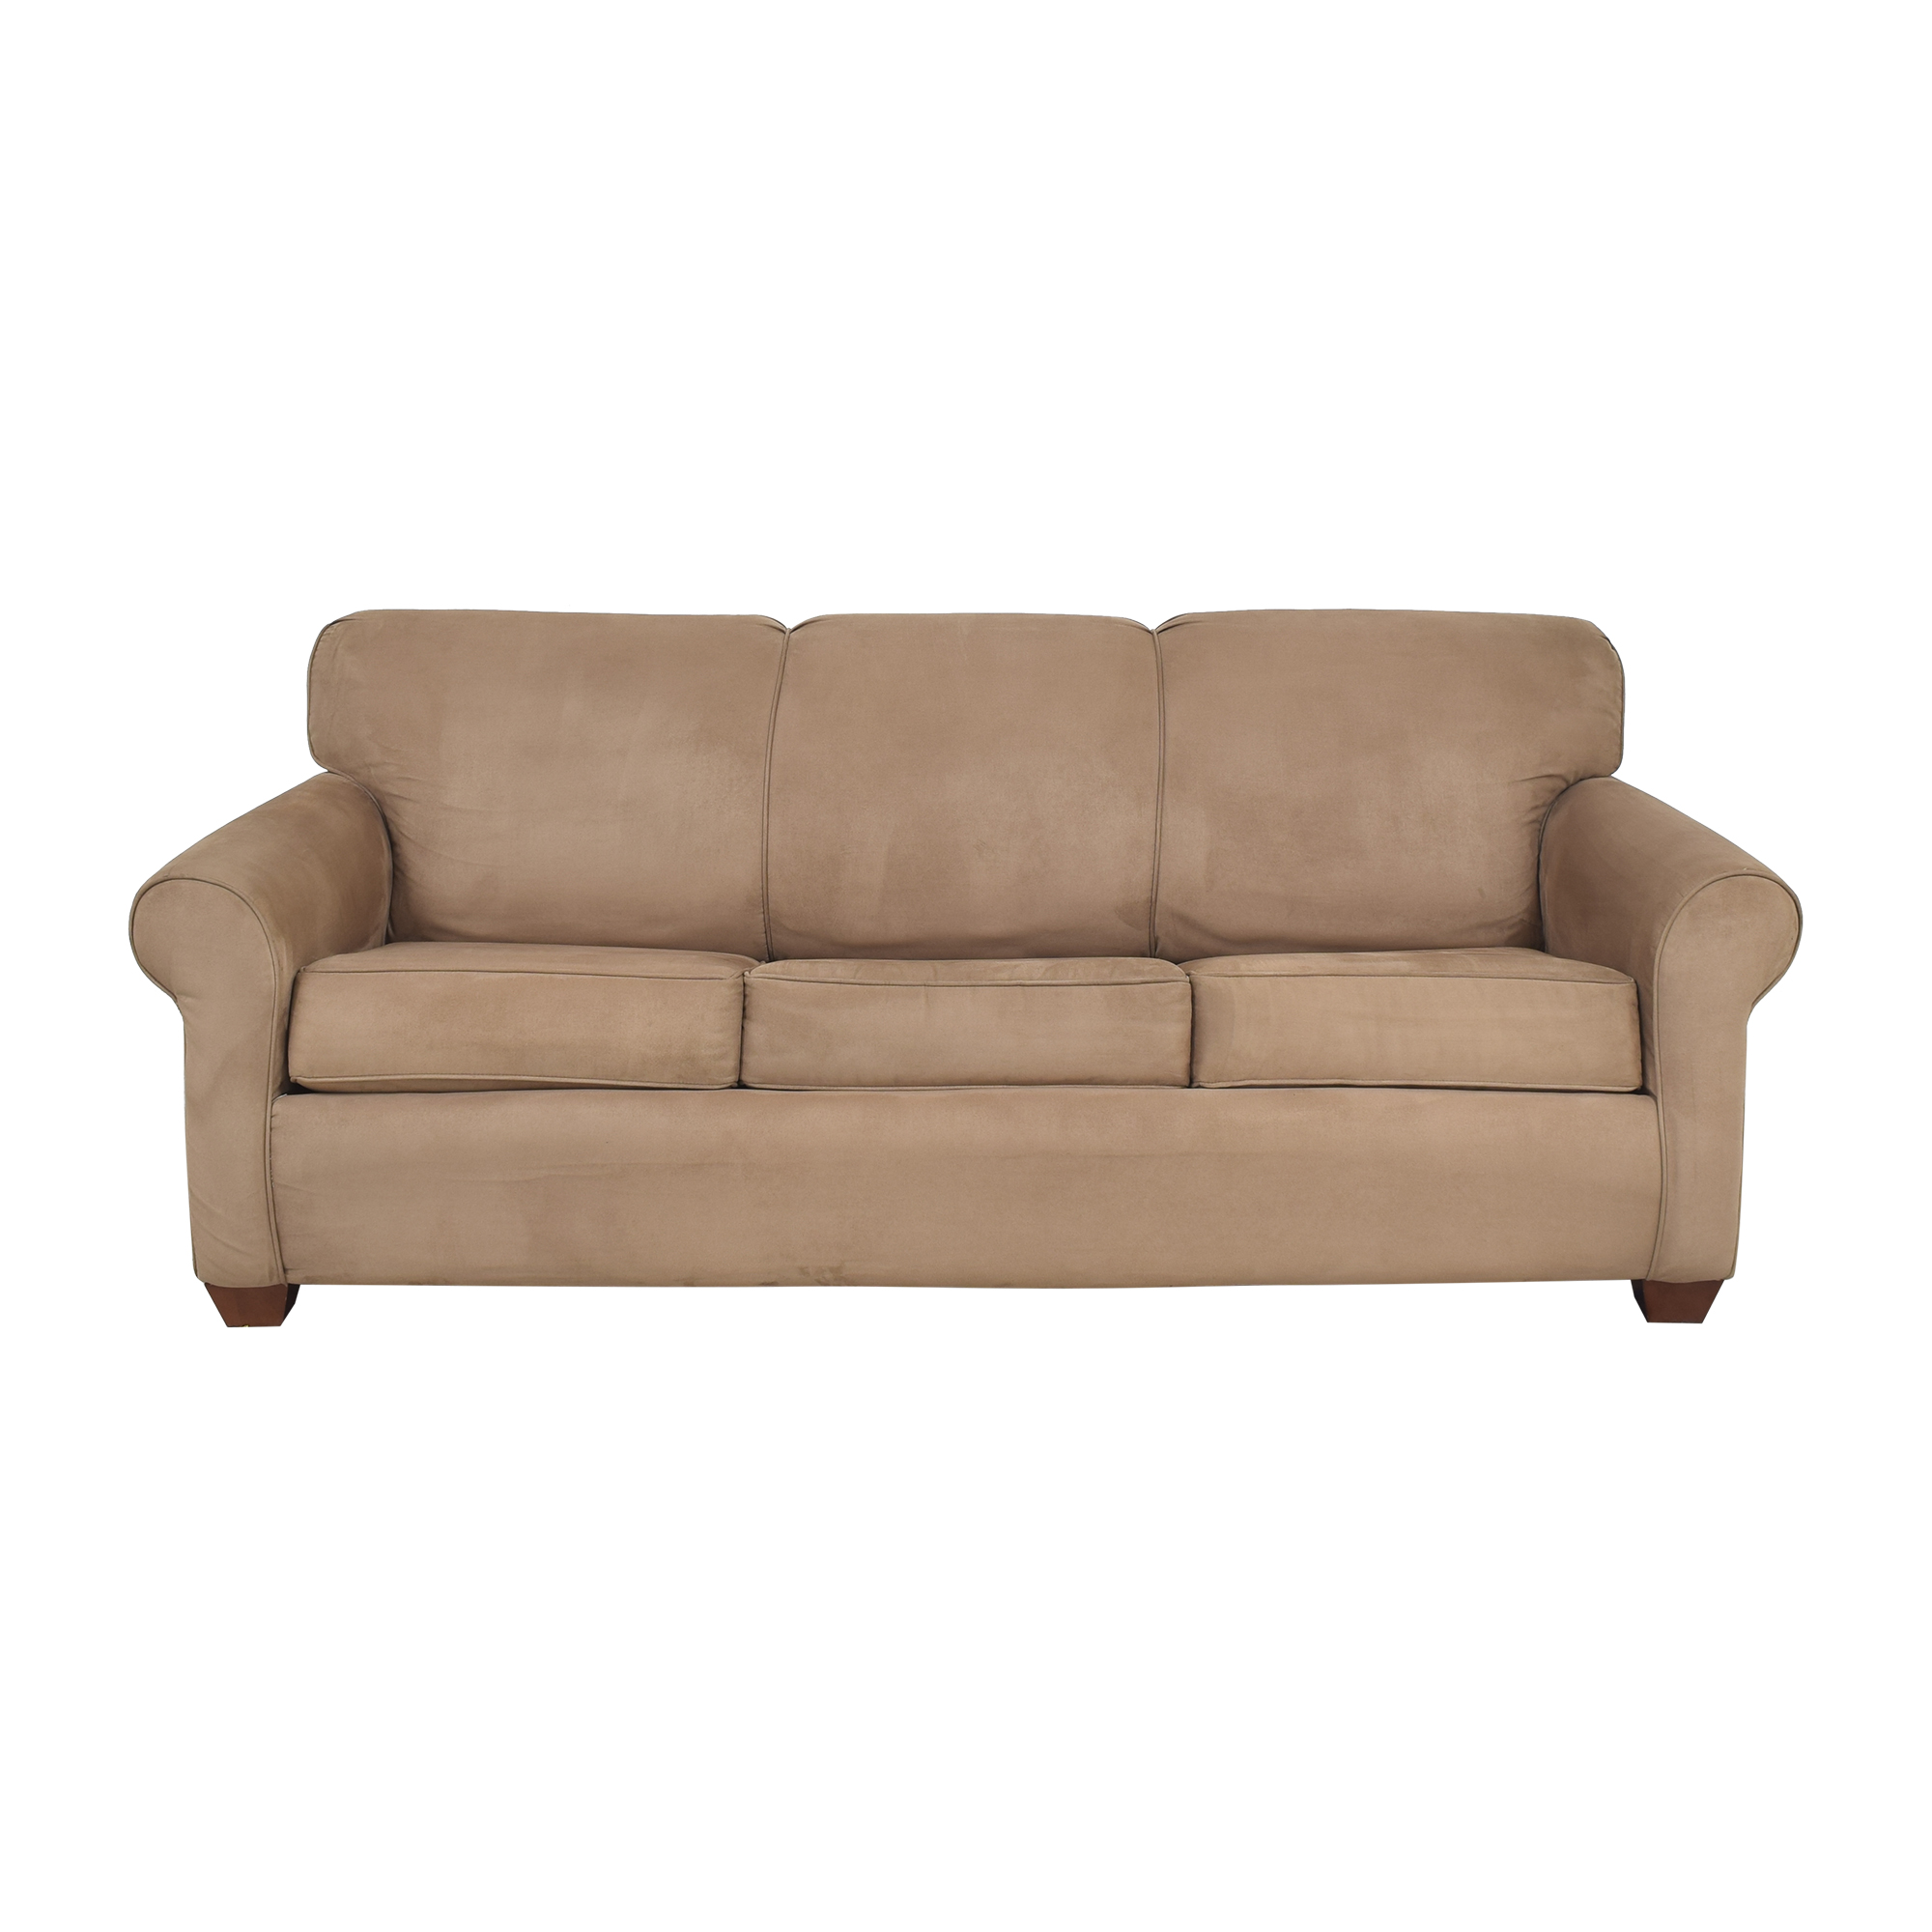 Sealy Sealy Queen Sofa Bed pa